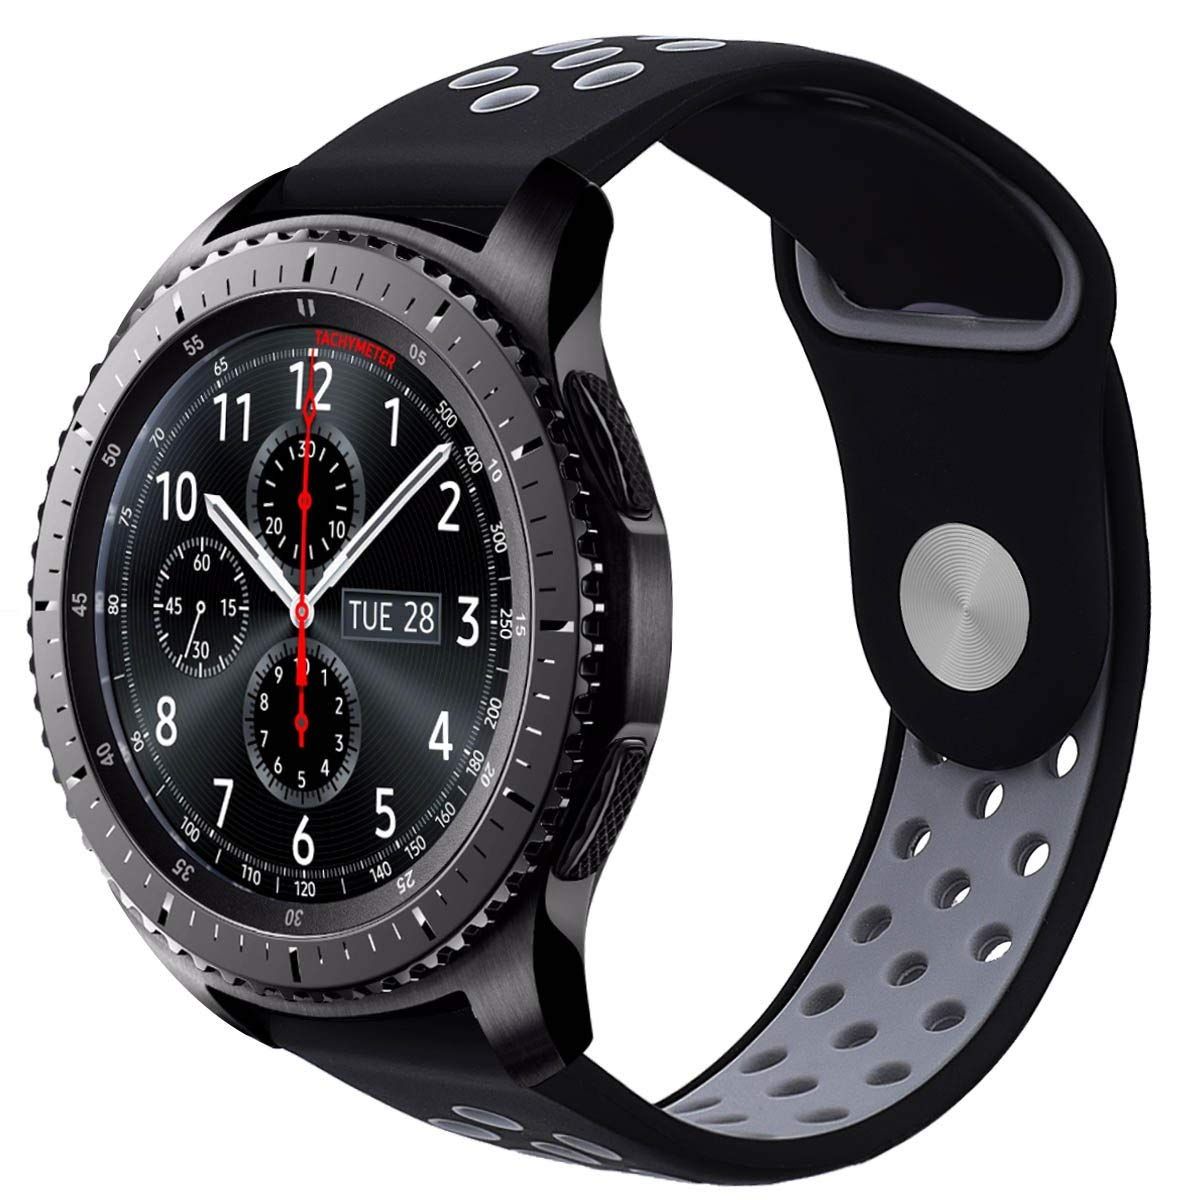 Galaxy Watch 46mm / Gear S3 Classic / S3 Frontier Bands, VIGOSS 22mm Soft Silicone Band Breathable Replacement Strap Wristband for Samsung Gear S3 Frontier/Classic Smart Watch (1-Black/Grey)